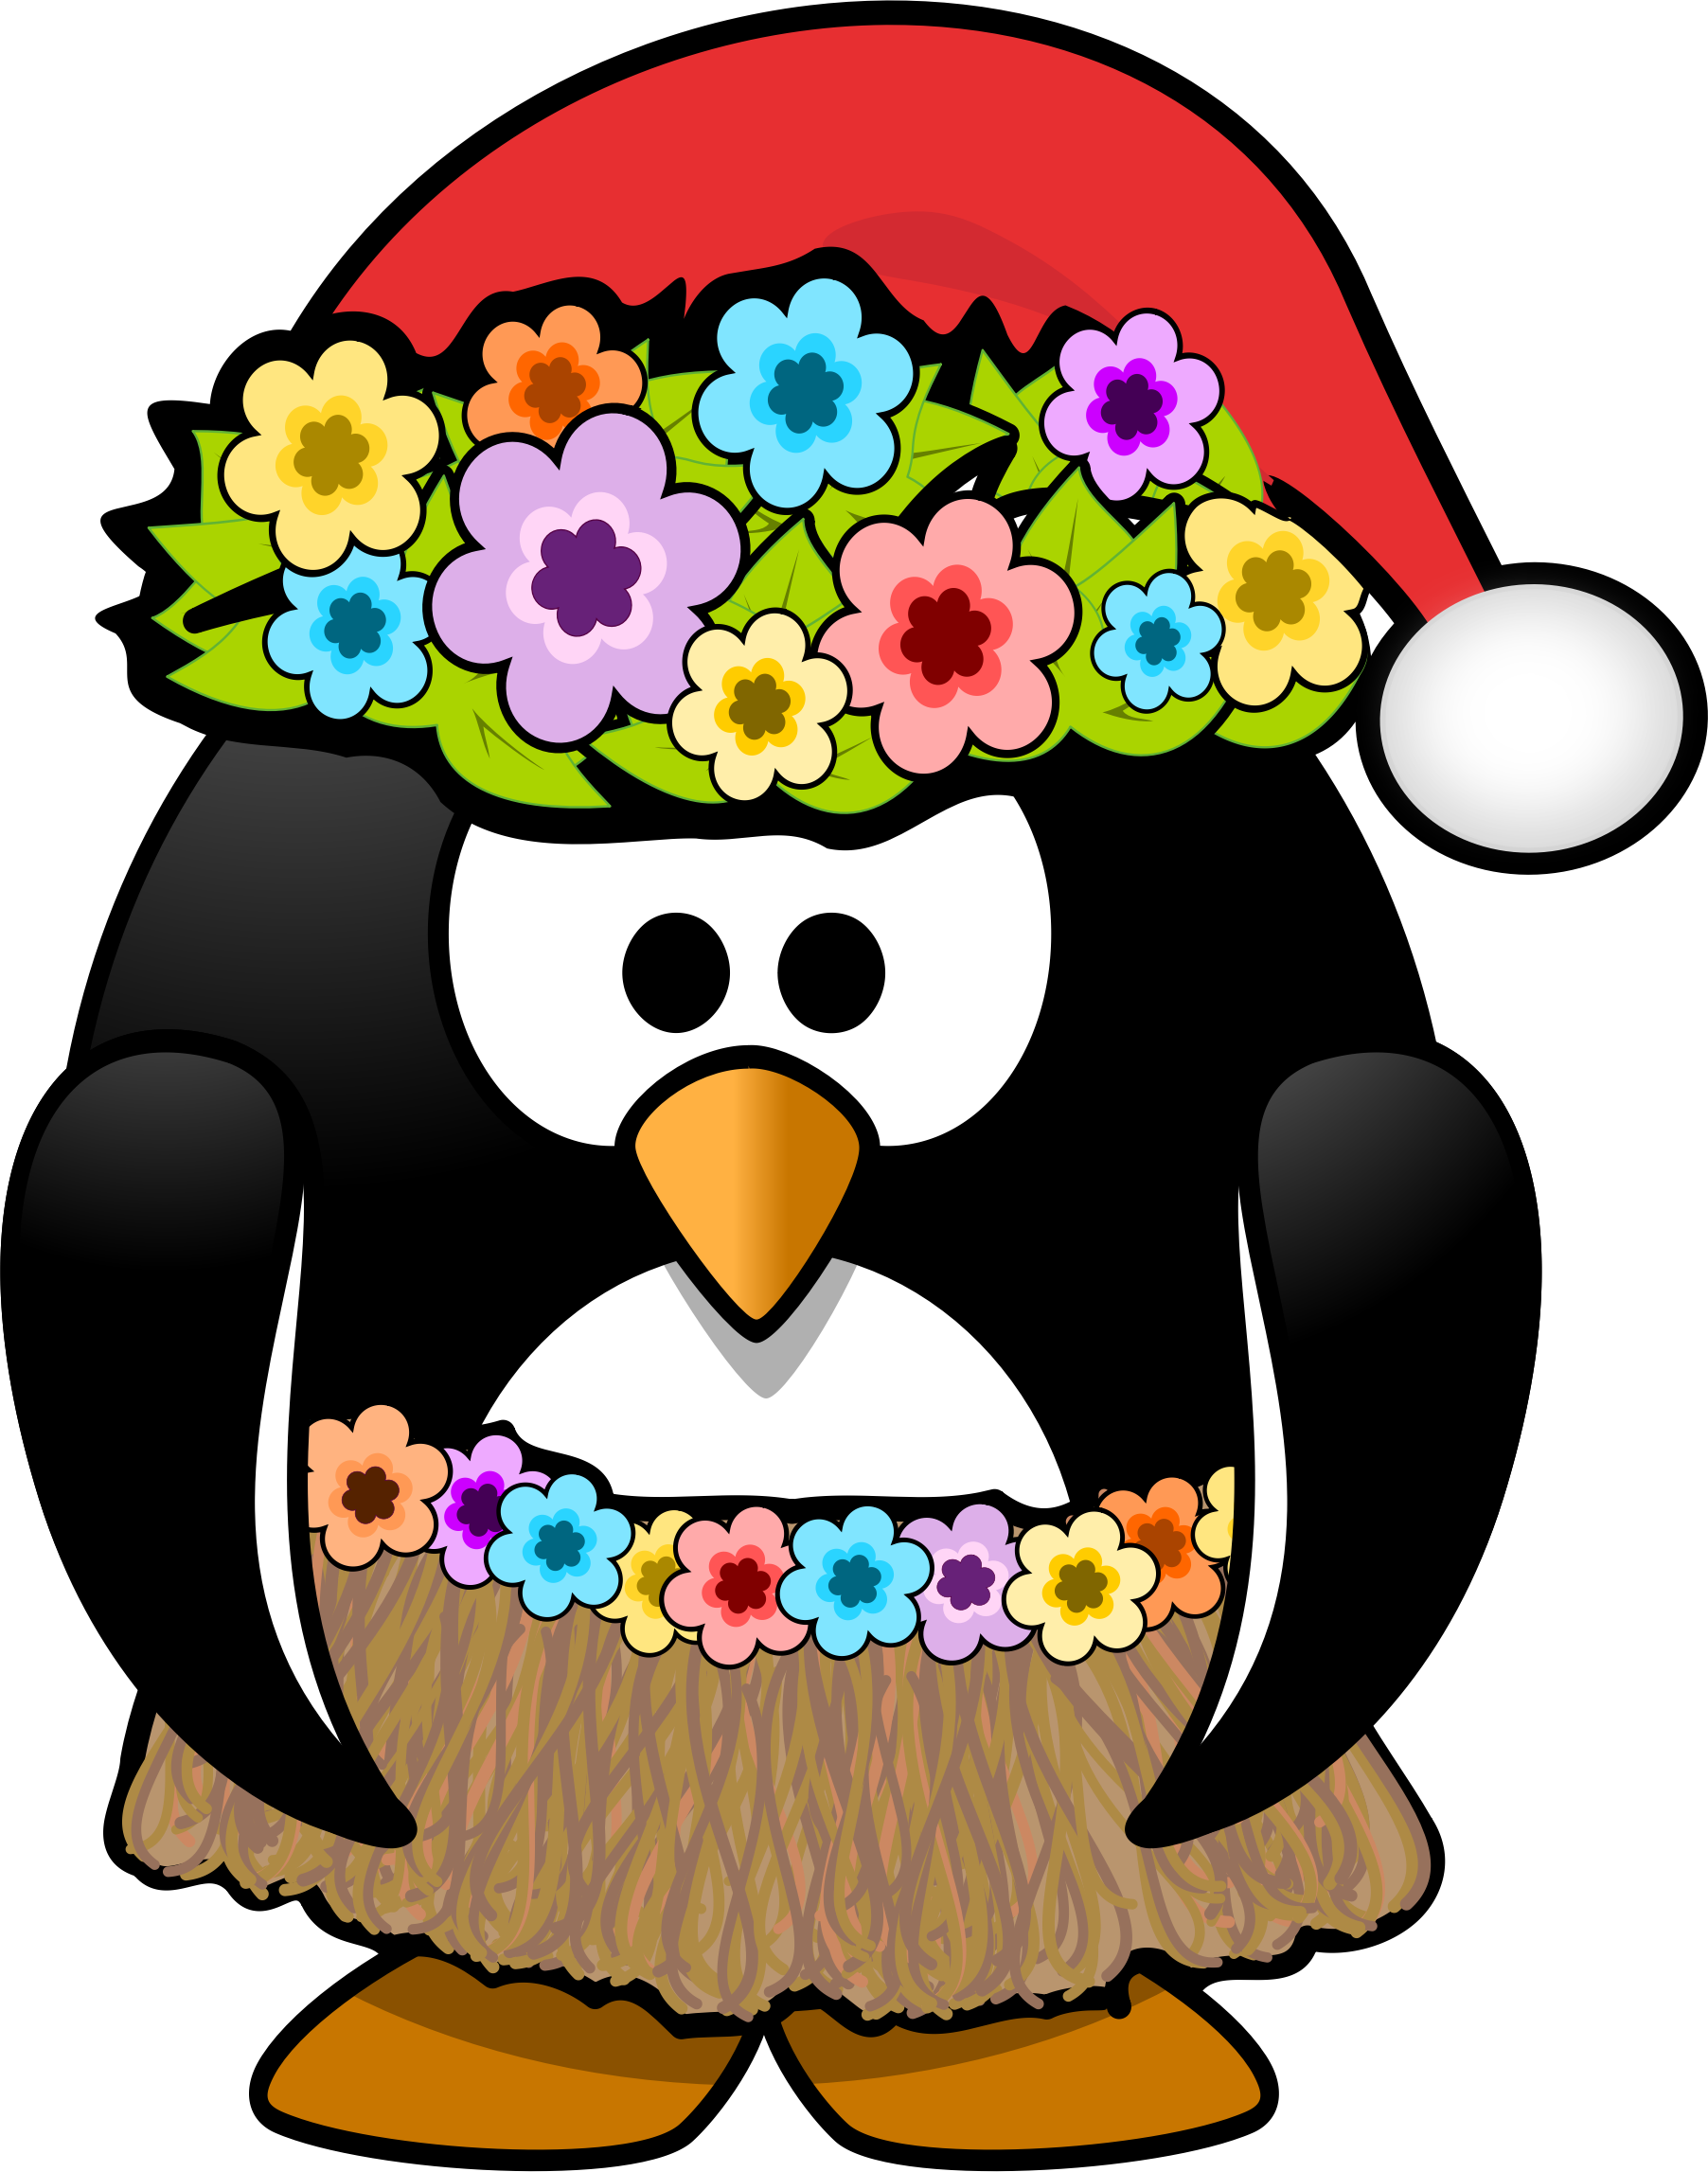 Christmas penguins clipart png transparent library Clipart - Christmas in July Penguin png transparent library